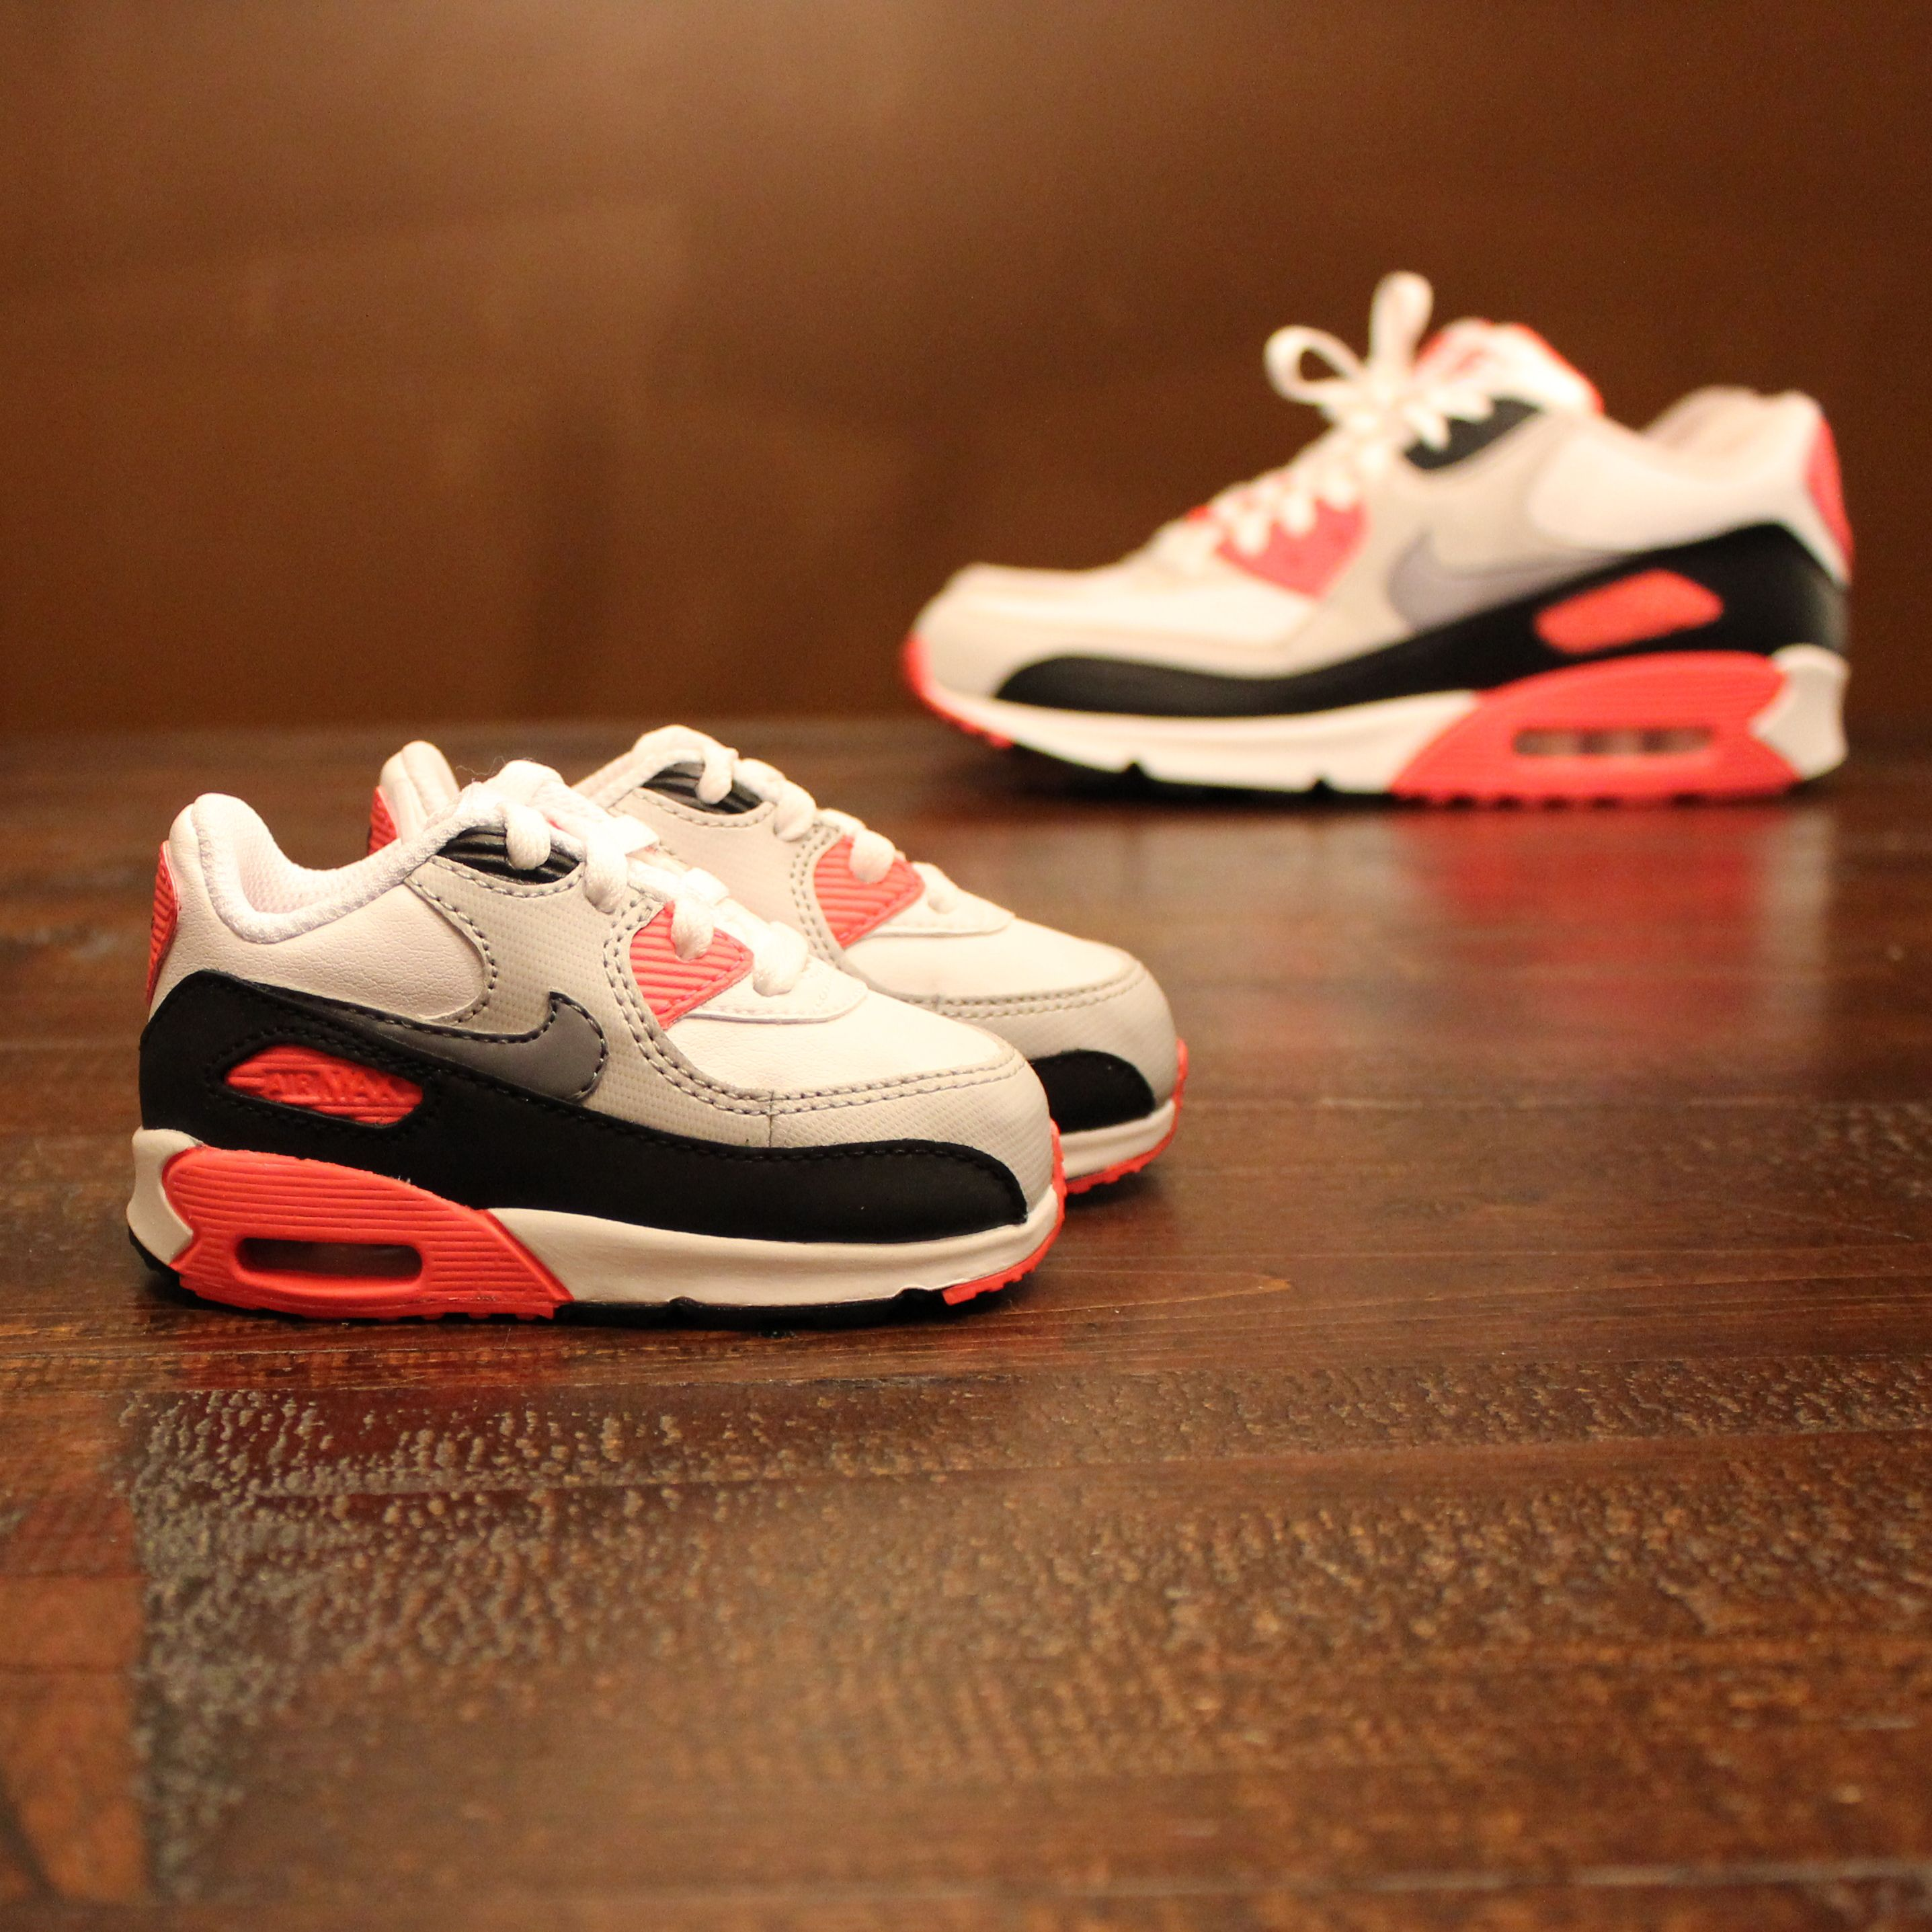 sports shoes 529ac e1396 Baby Nike Air Max 90 Infra reds Finally gonna have someone to match  sneakers with again!  )